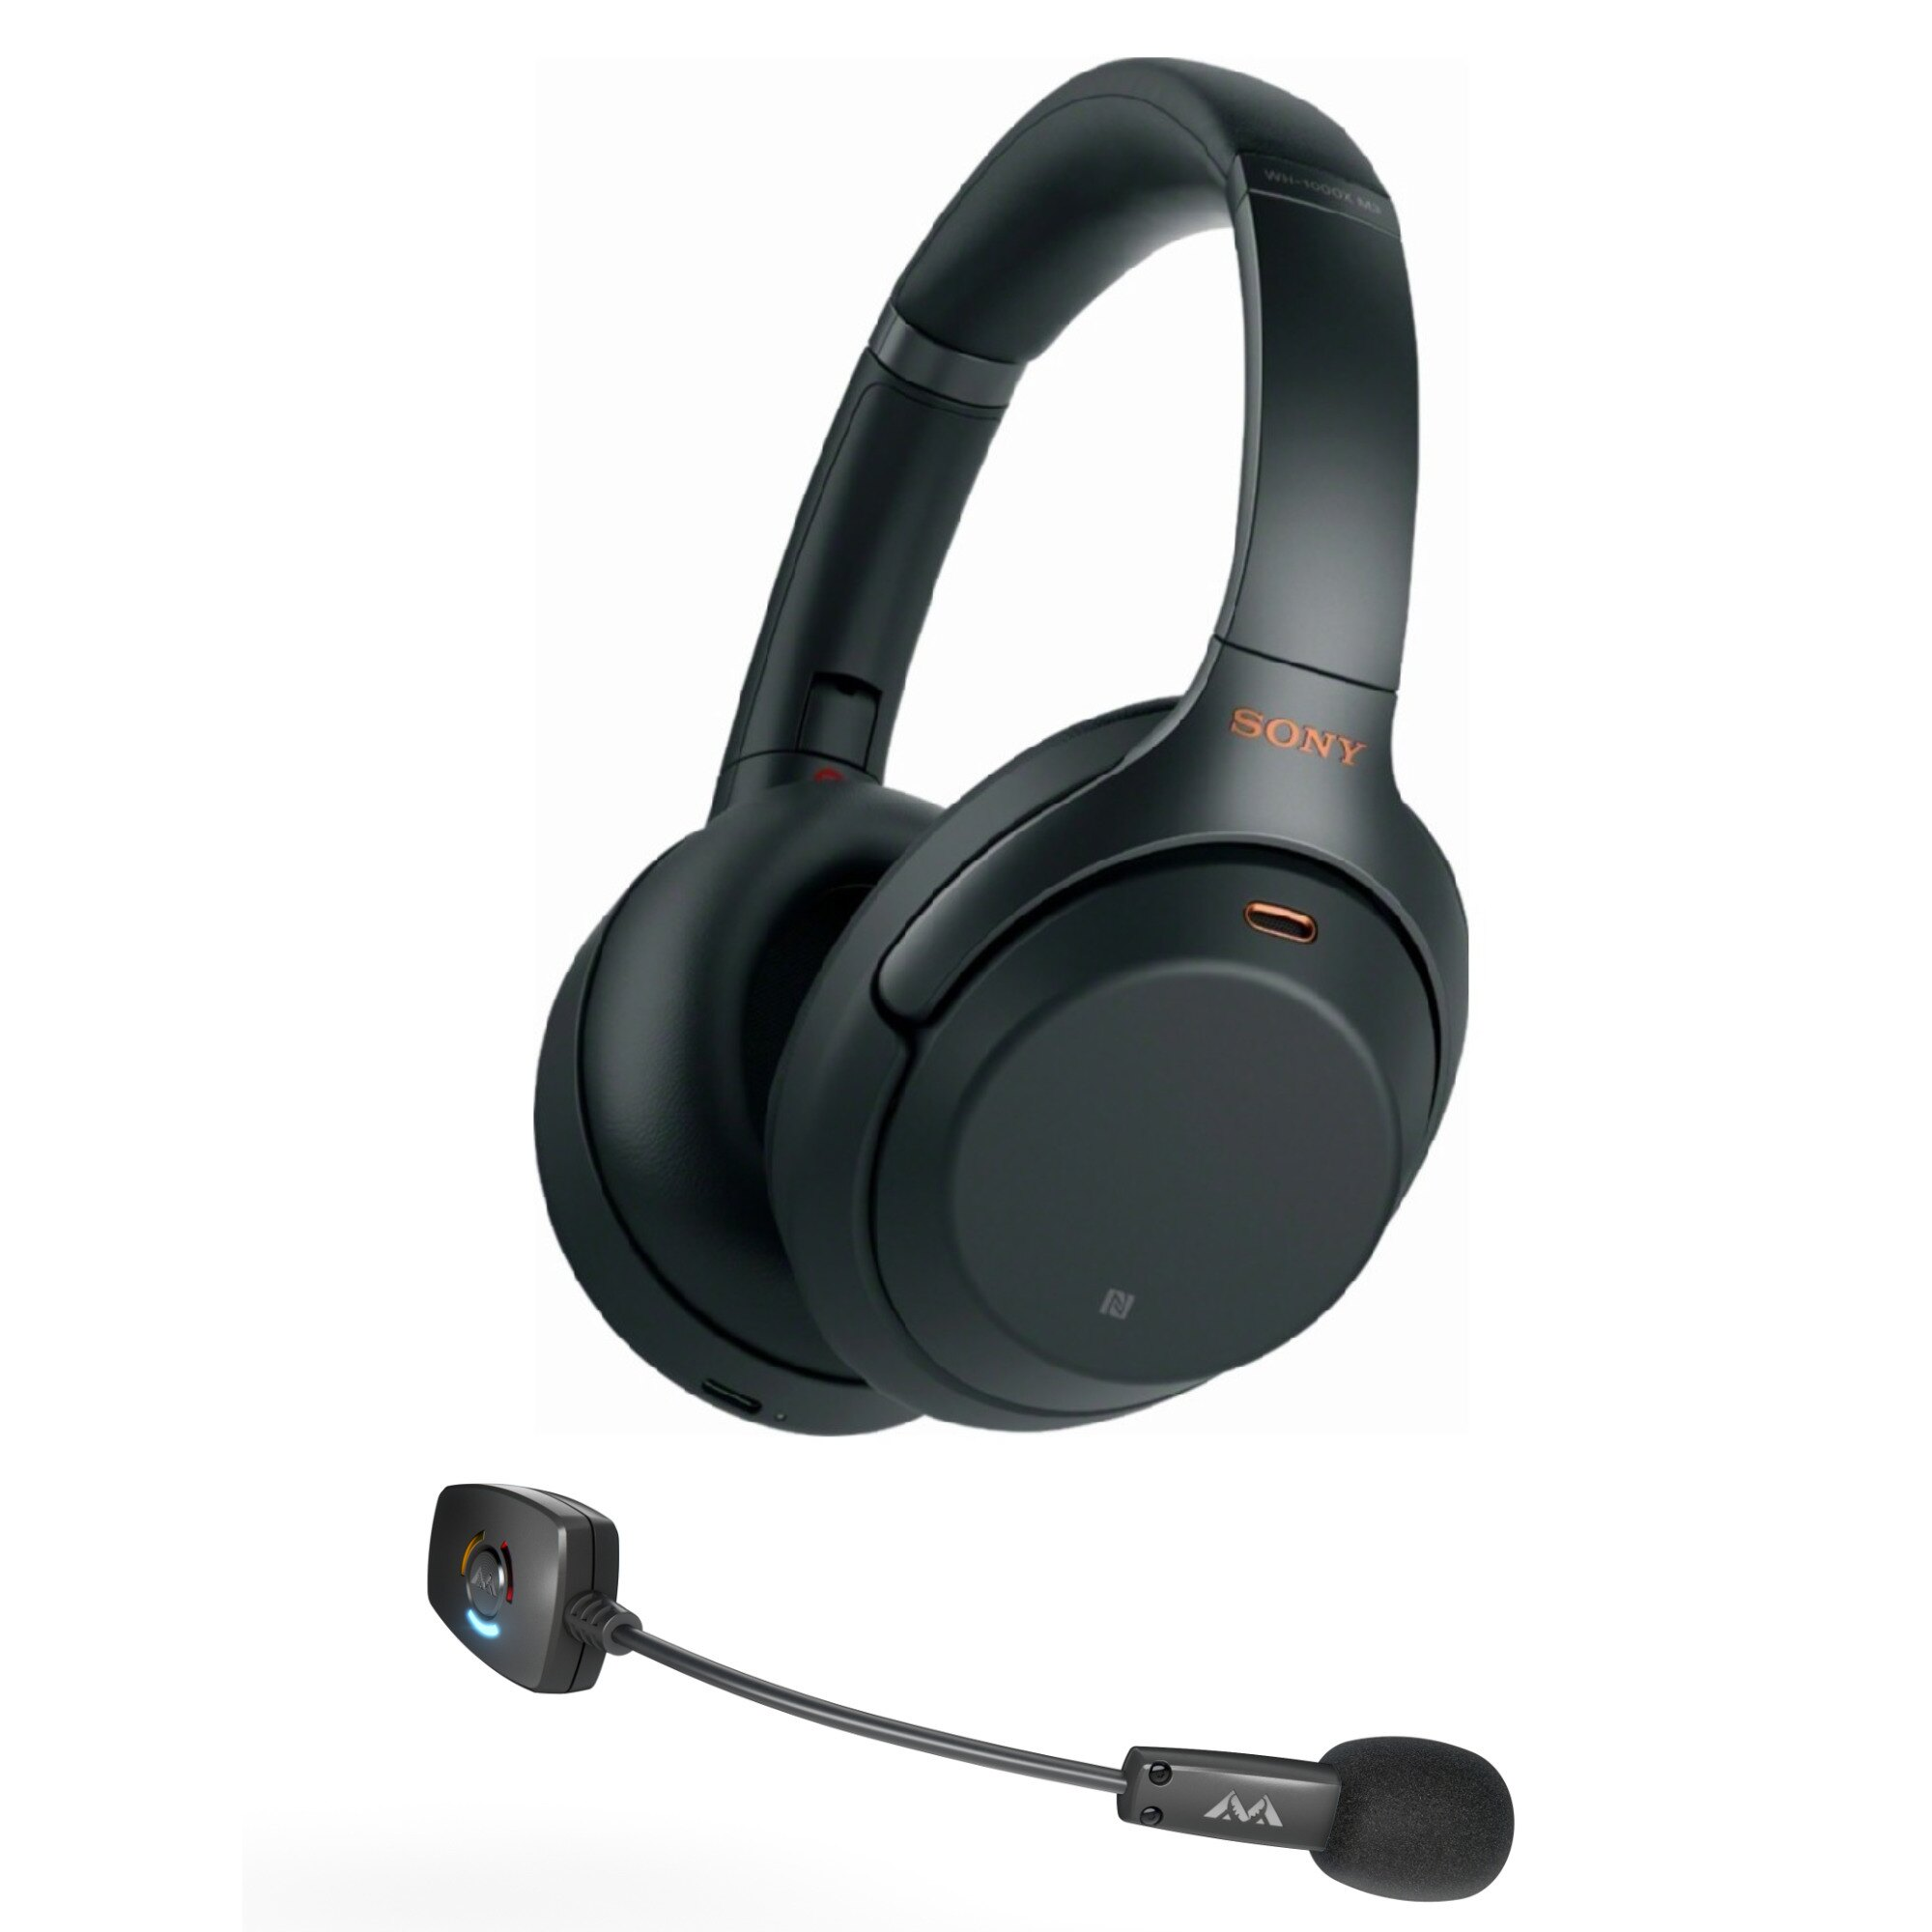 94bd782a059 Sony WH-1000XM3 Wireless Noise-Canceling Headphones (Black) with ModMic  Wireless